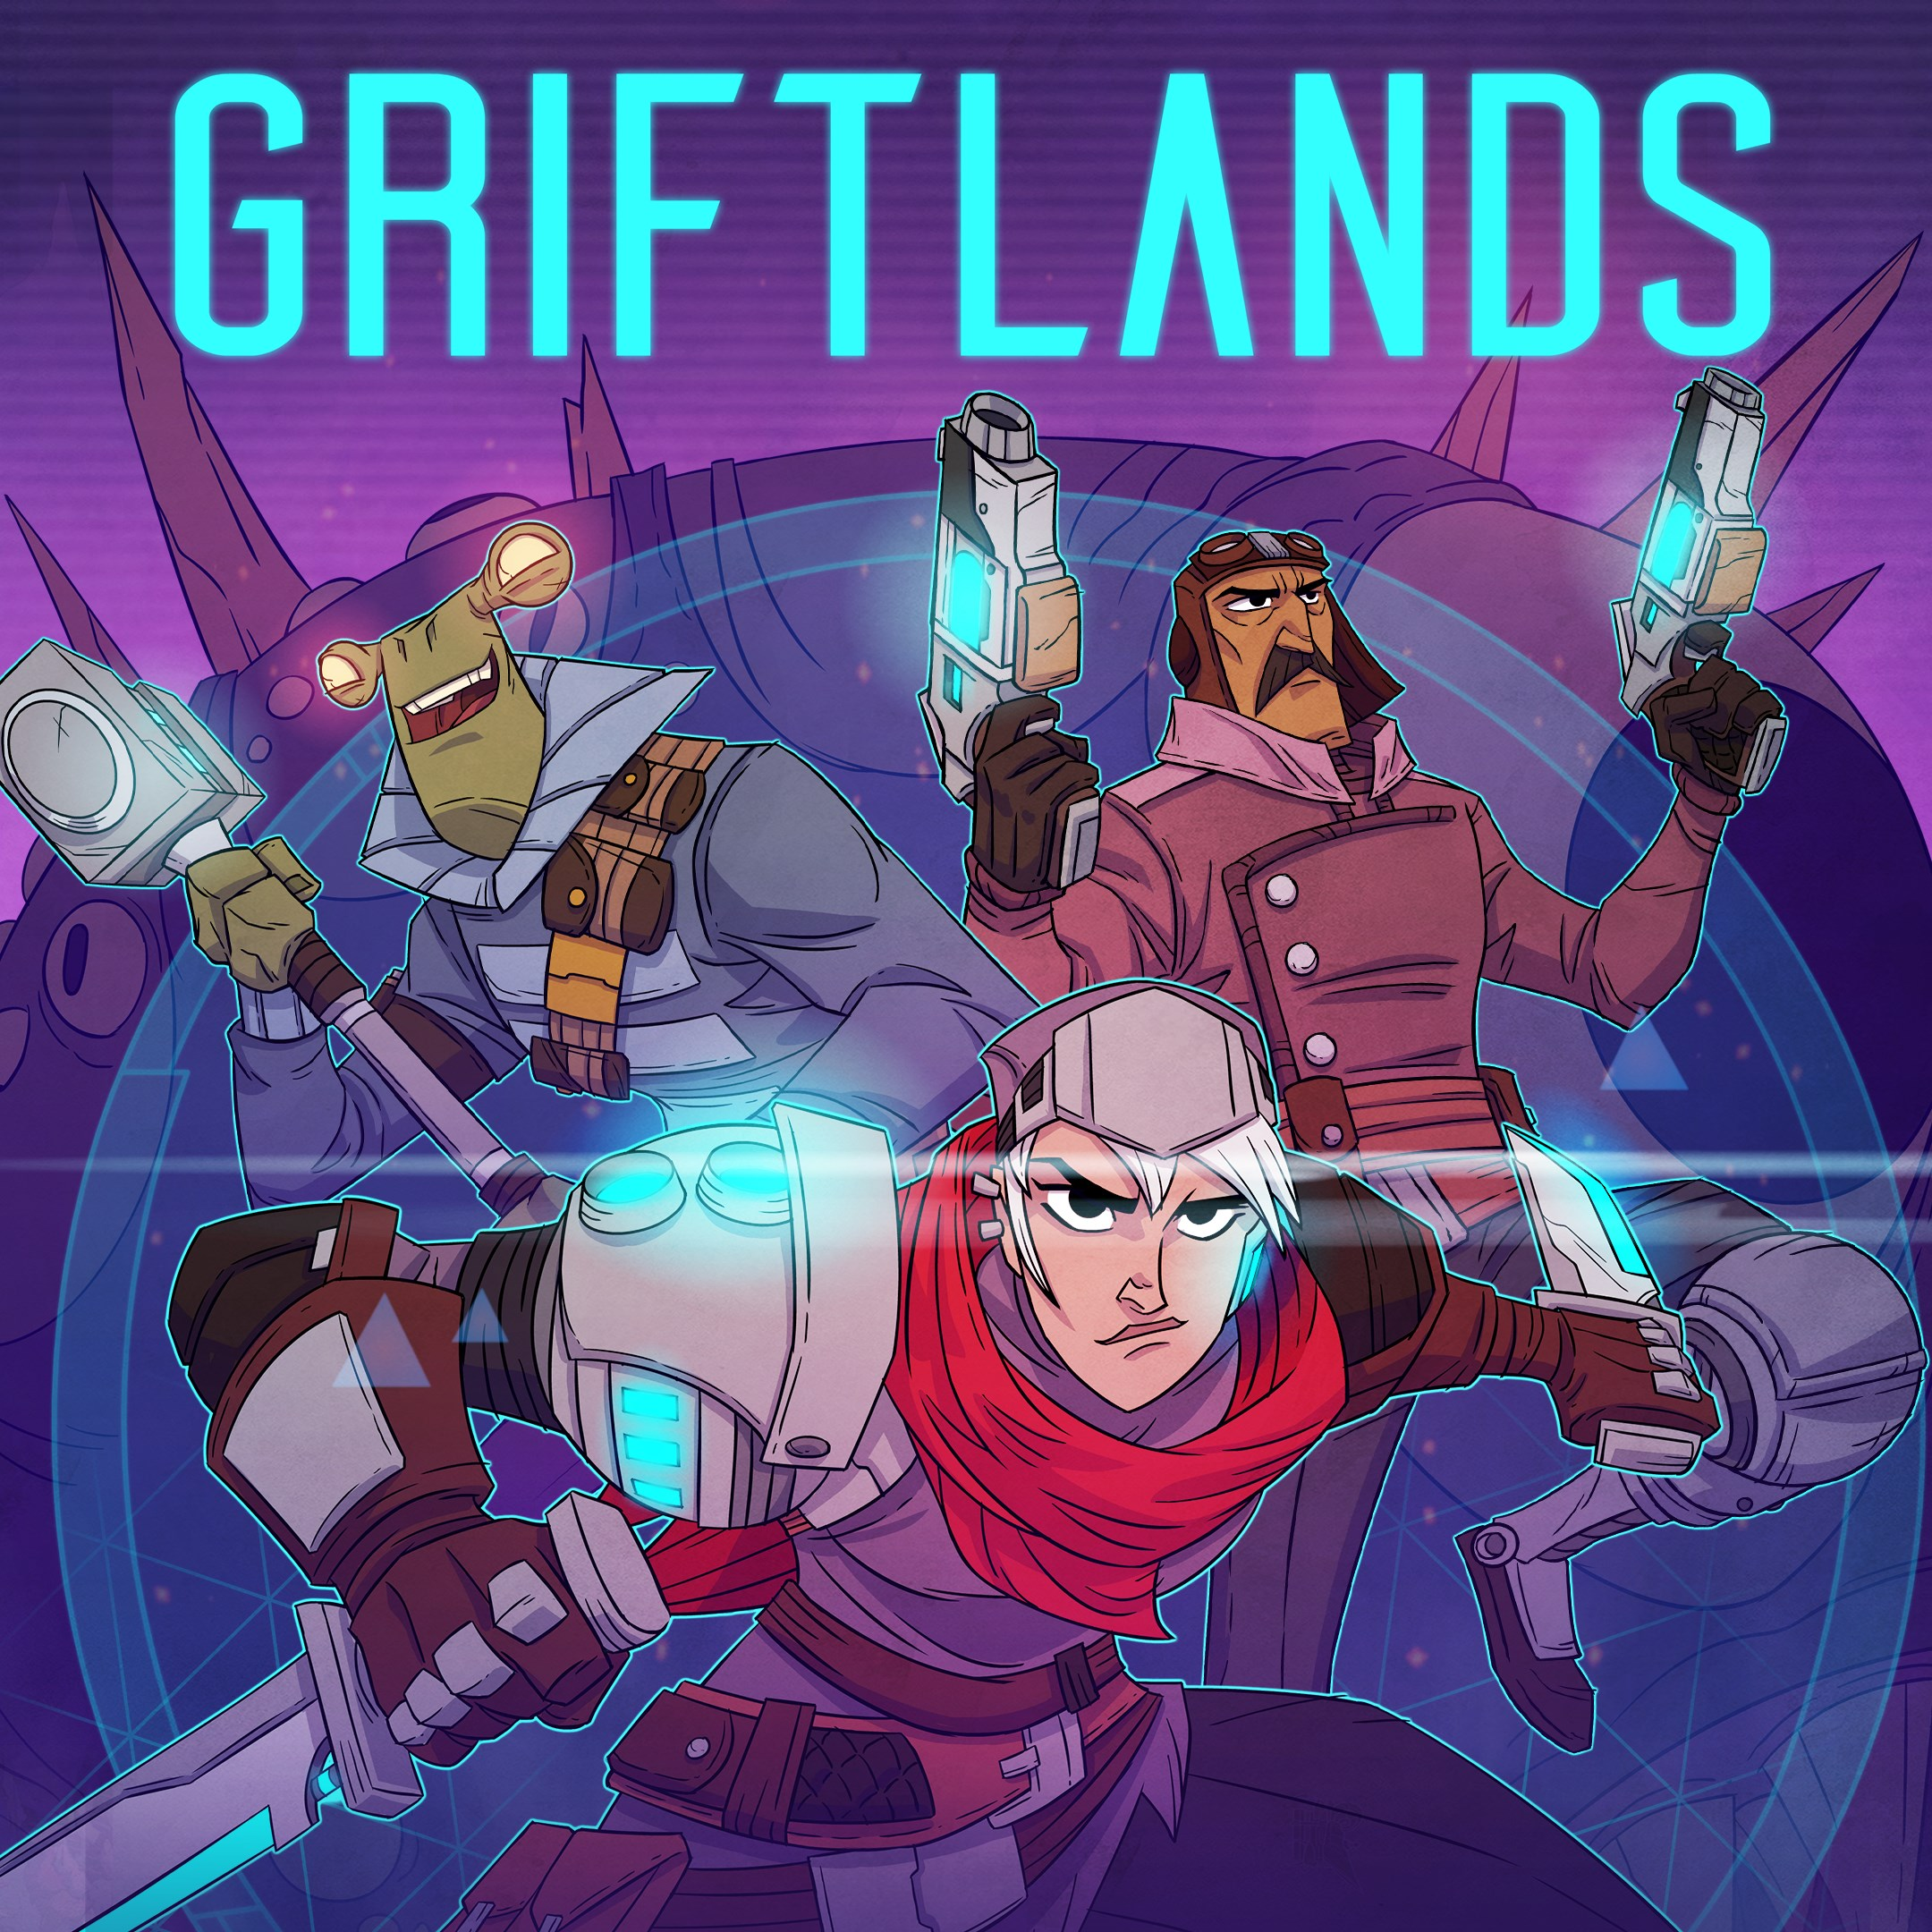 Image for Griftlands